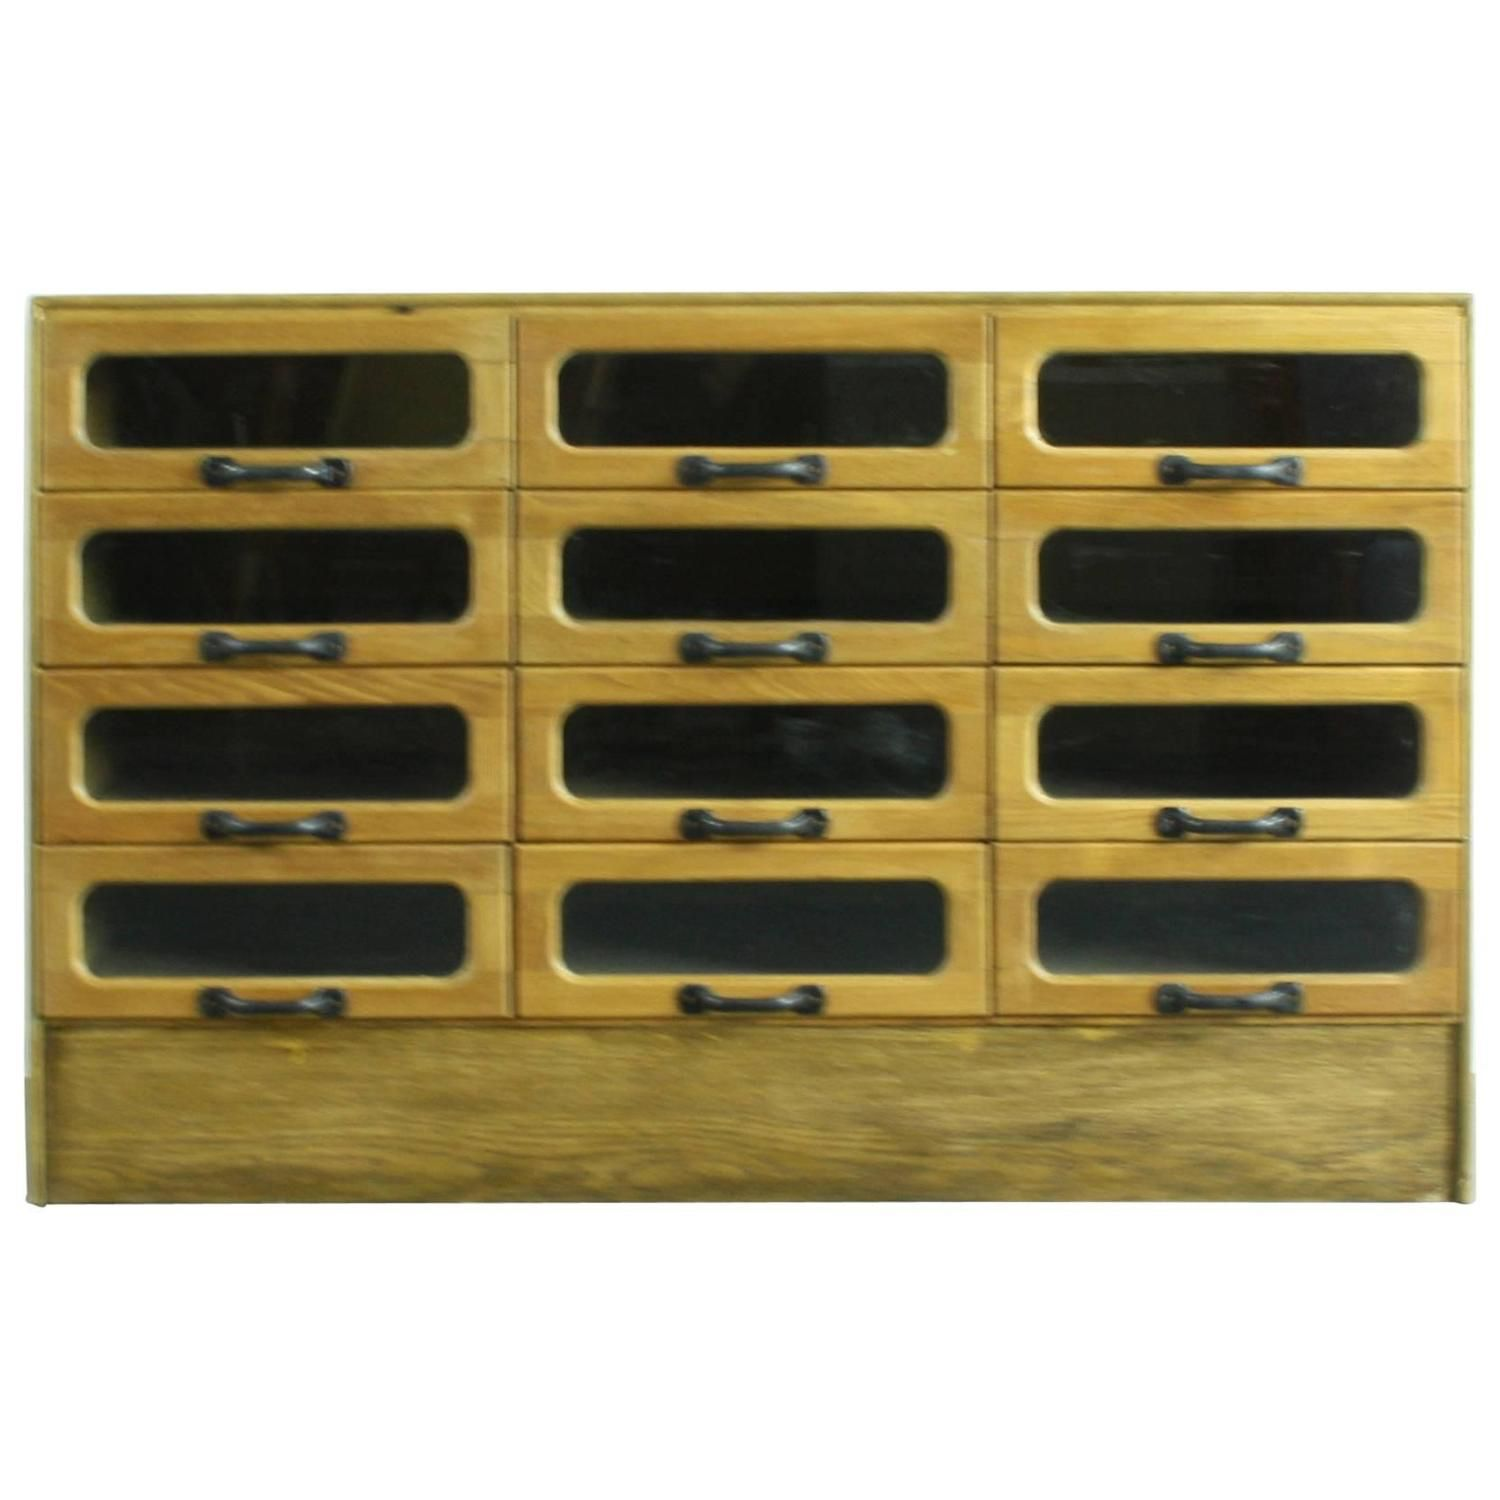 Early 20th Century British 12-Drawer Haberdashery Cabinet | See more antique and modern Cabinets at https://www.1stdibs.com/furniture/storage-case-pieces/cabinets